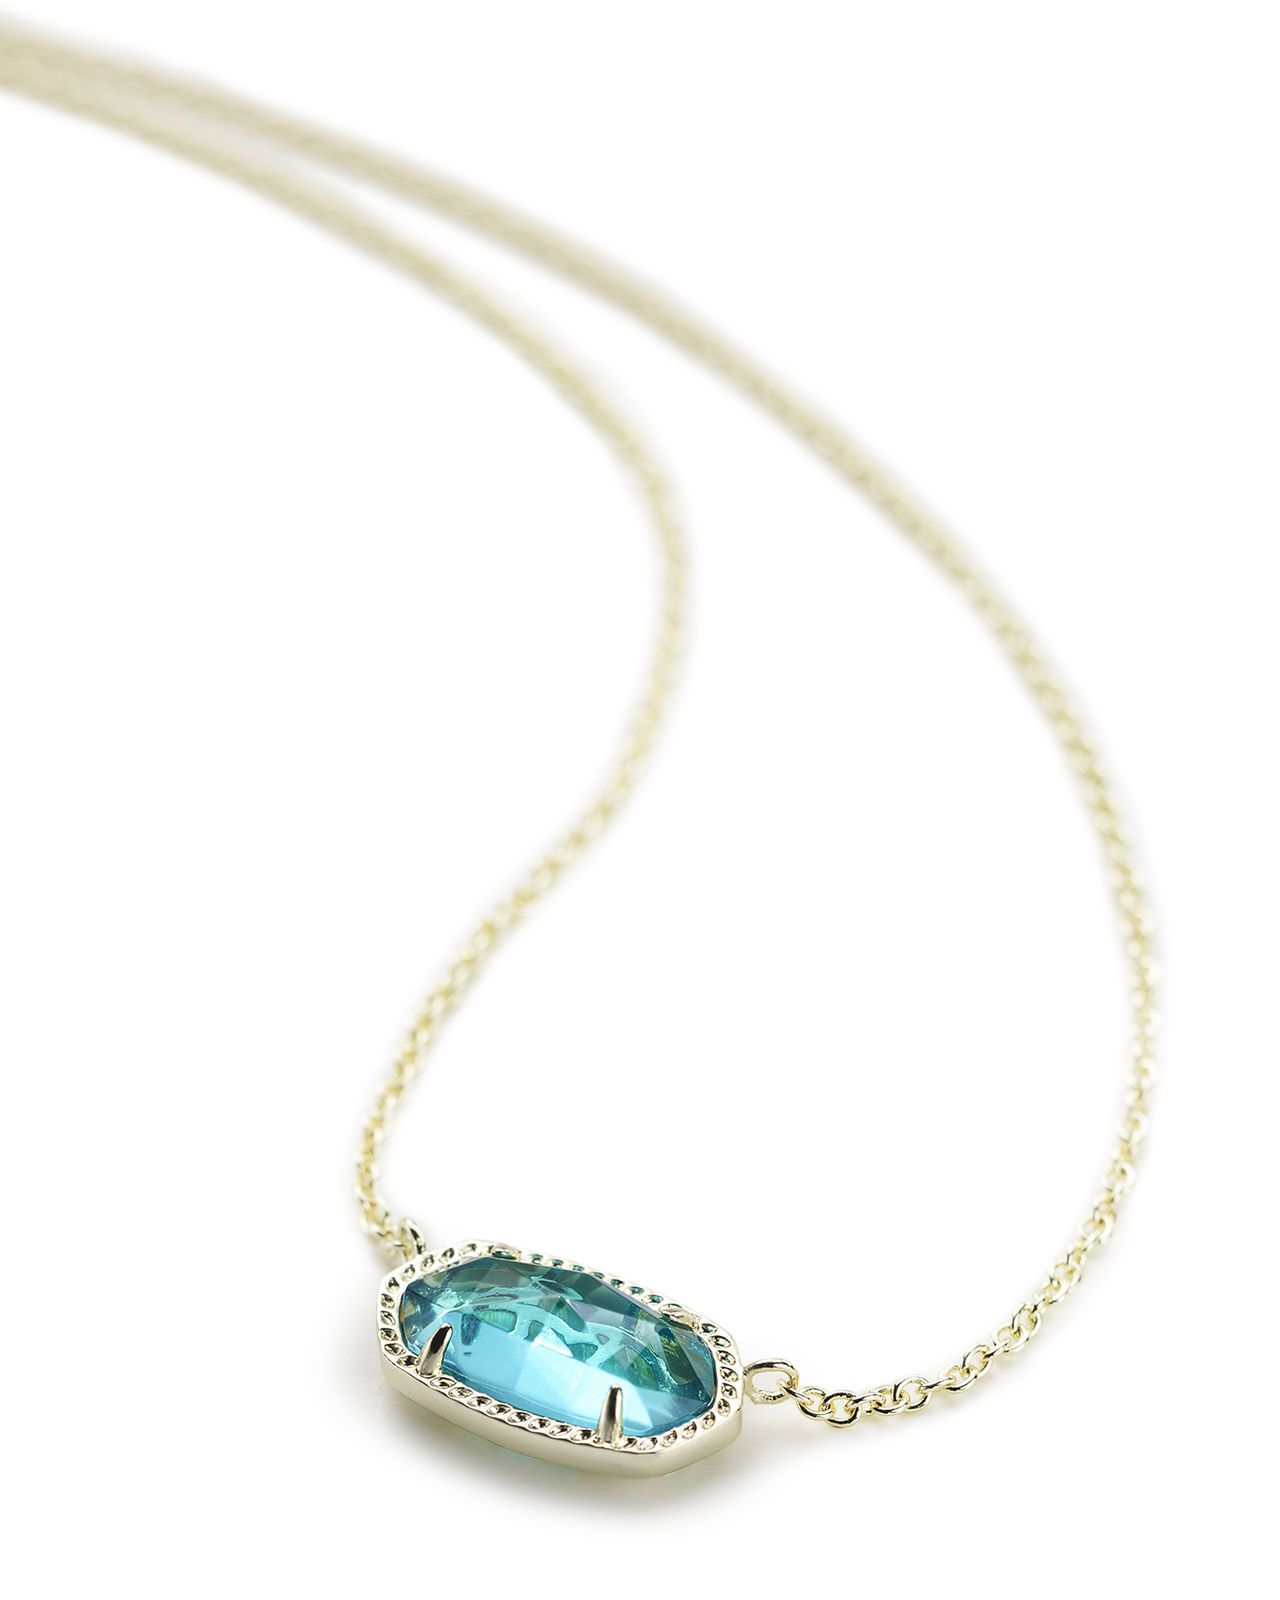 Kendra scott elisa oval pendant necklace in london blue glass and